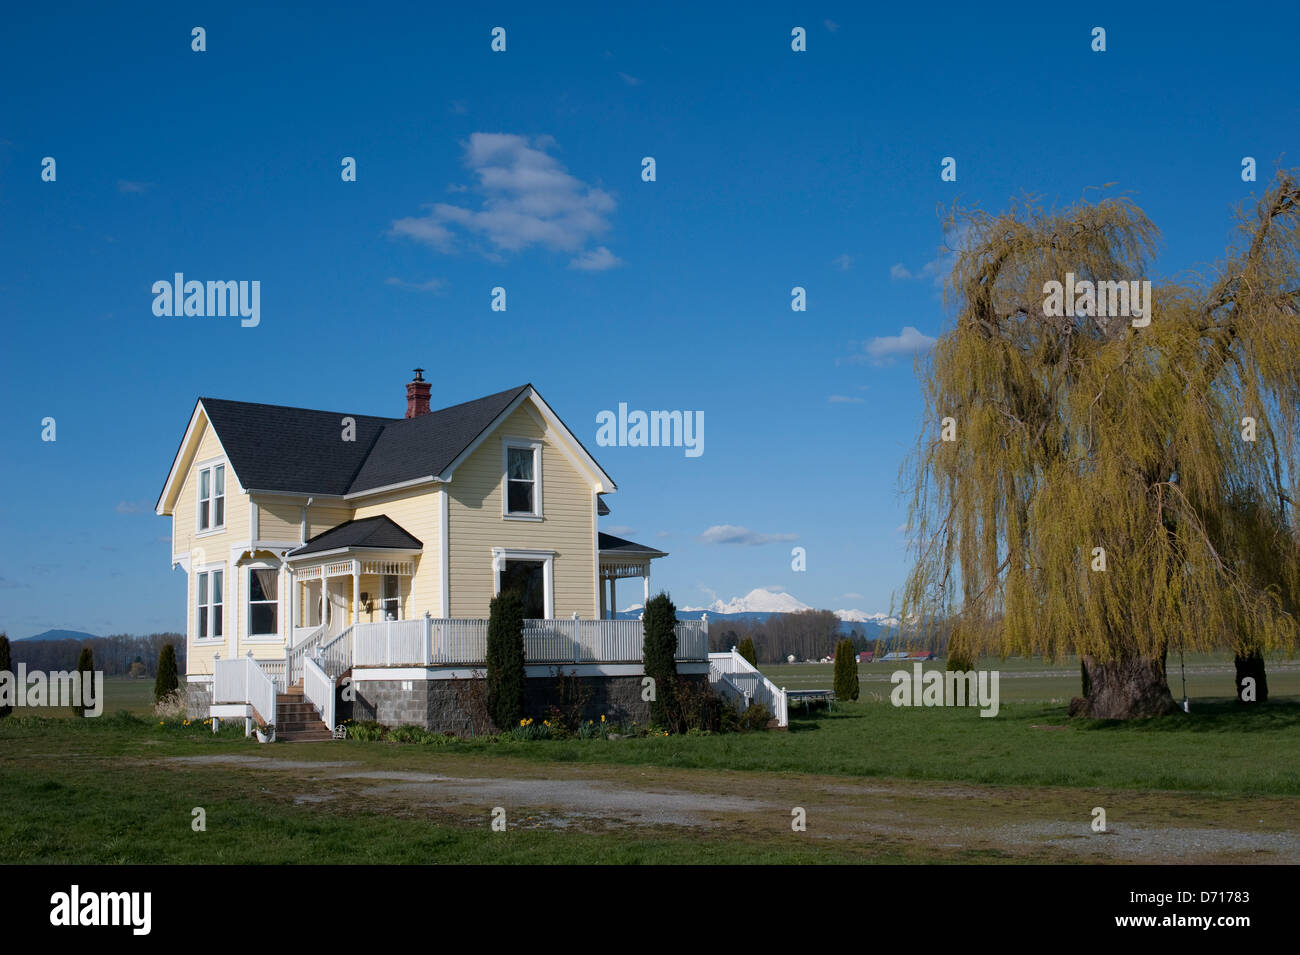 Usa Washington State Skagit Valley Farm House With Mt